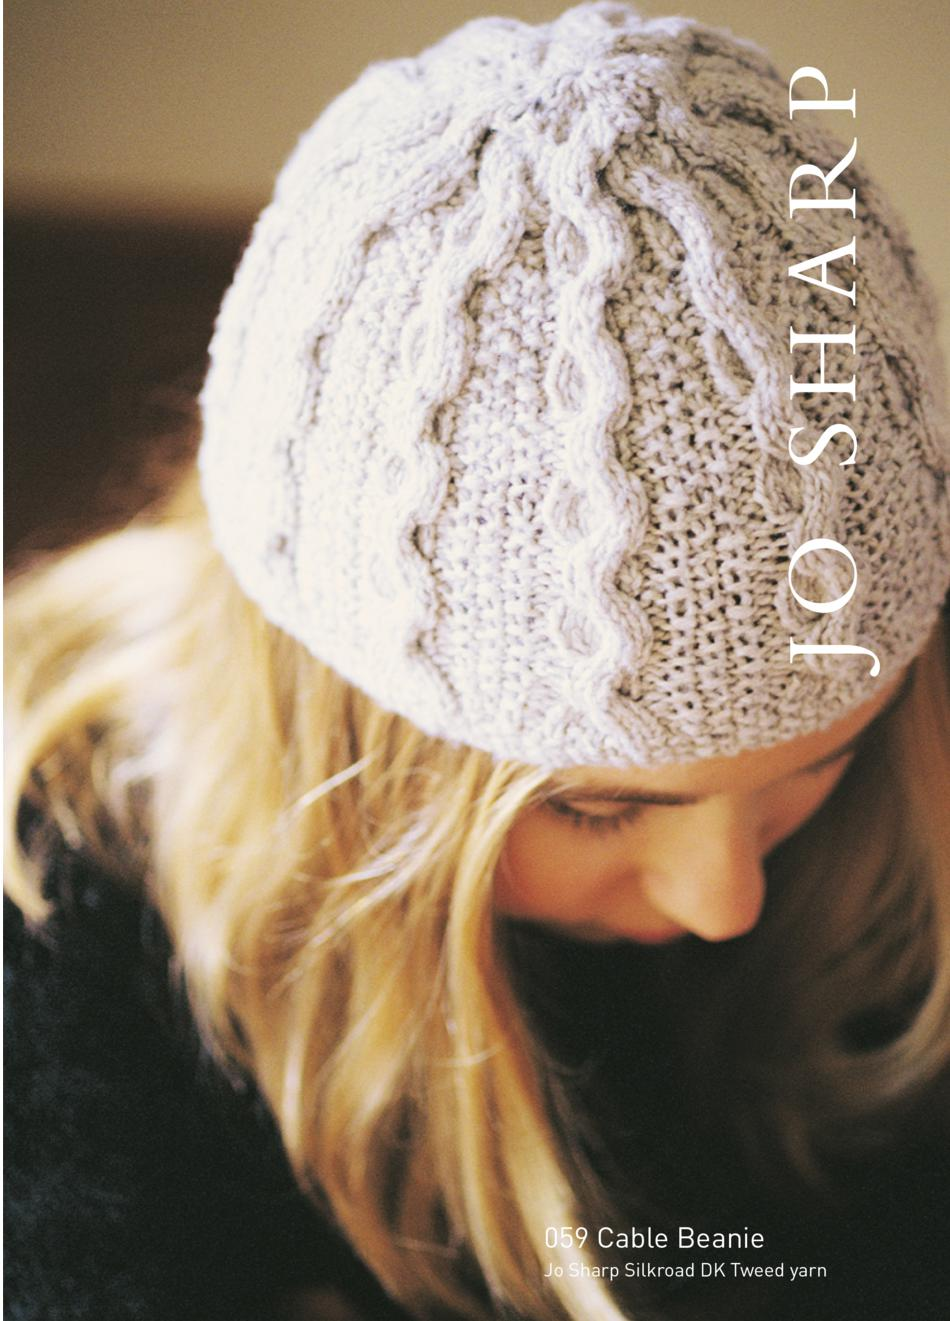 Knitting Patterns Jo Sharp Cable Beanie and Textured Scarf Pattern